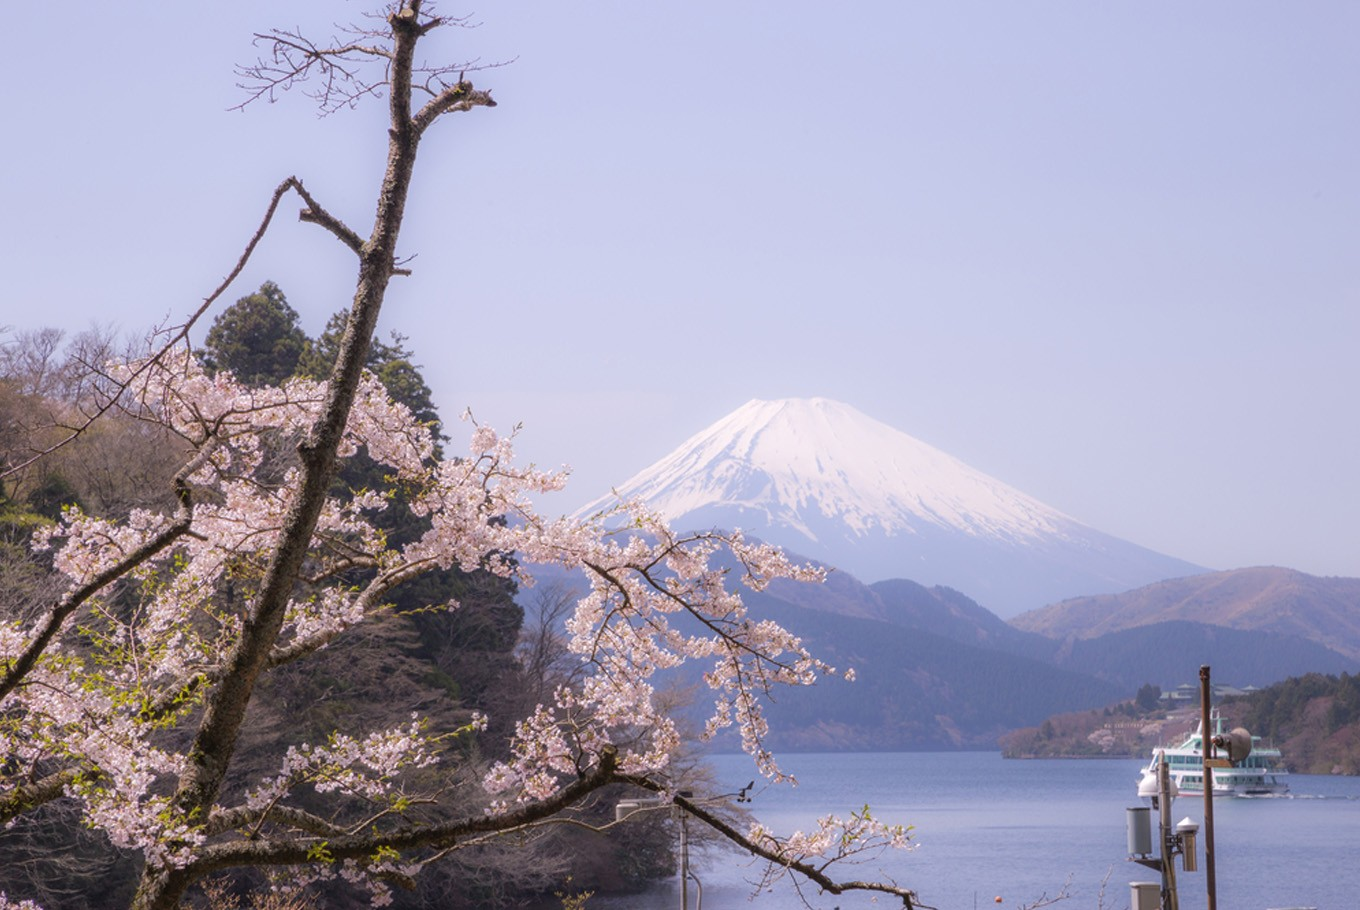 Hakone to add features for tourism revival